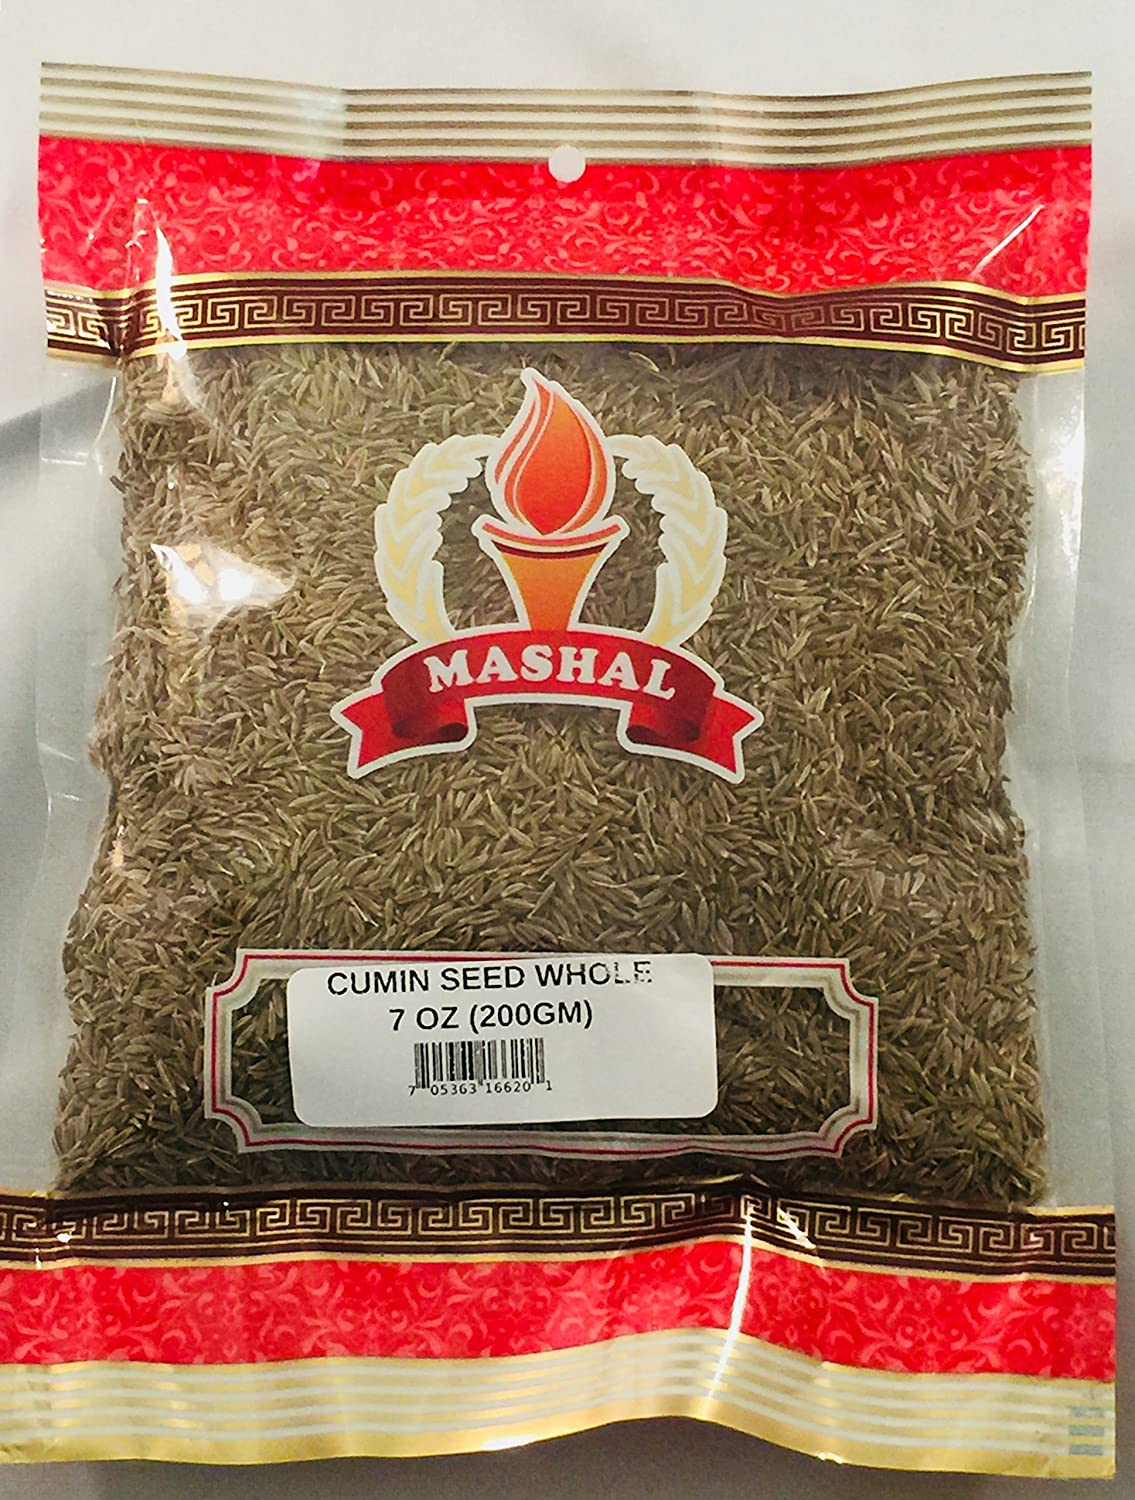 Mashal Cumin Seed Whole 7 oz Outlet sale feature gm Some reservation 200